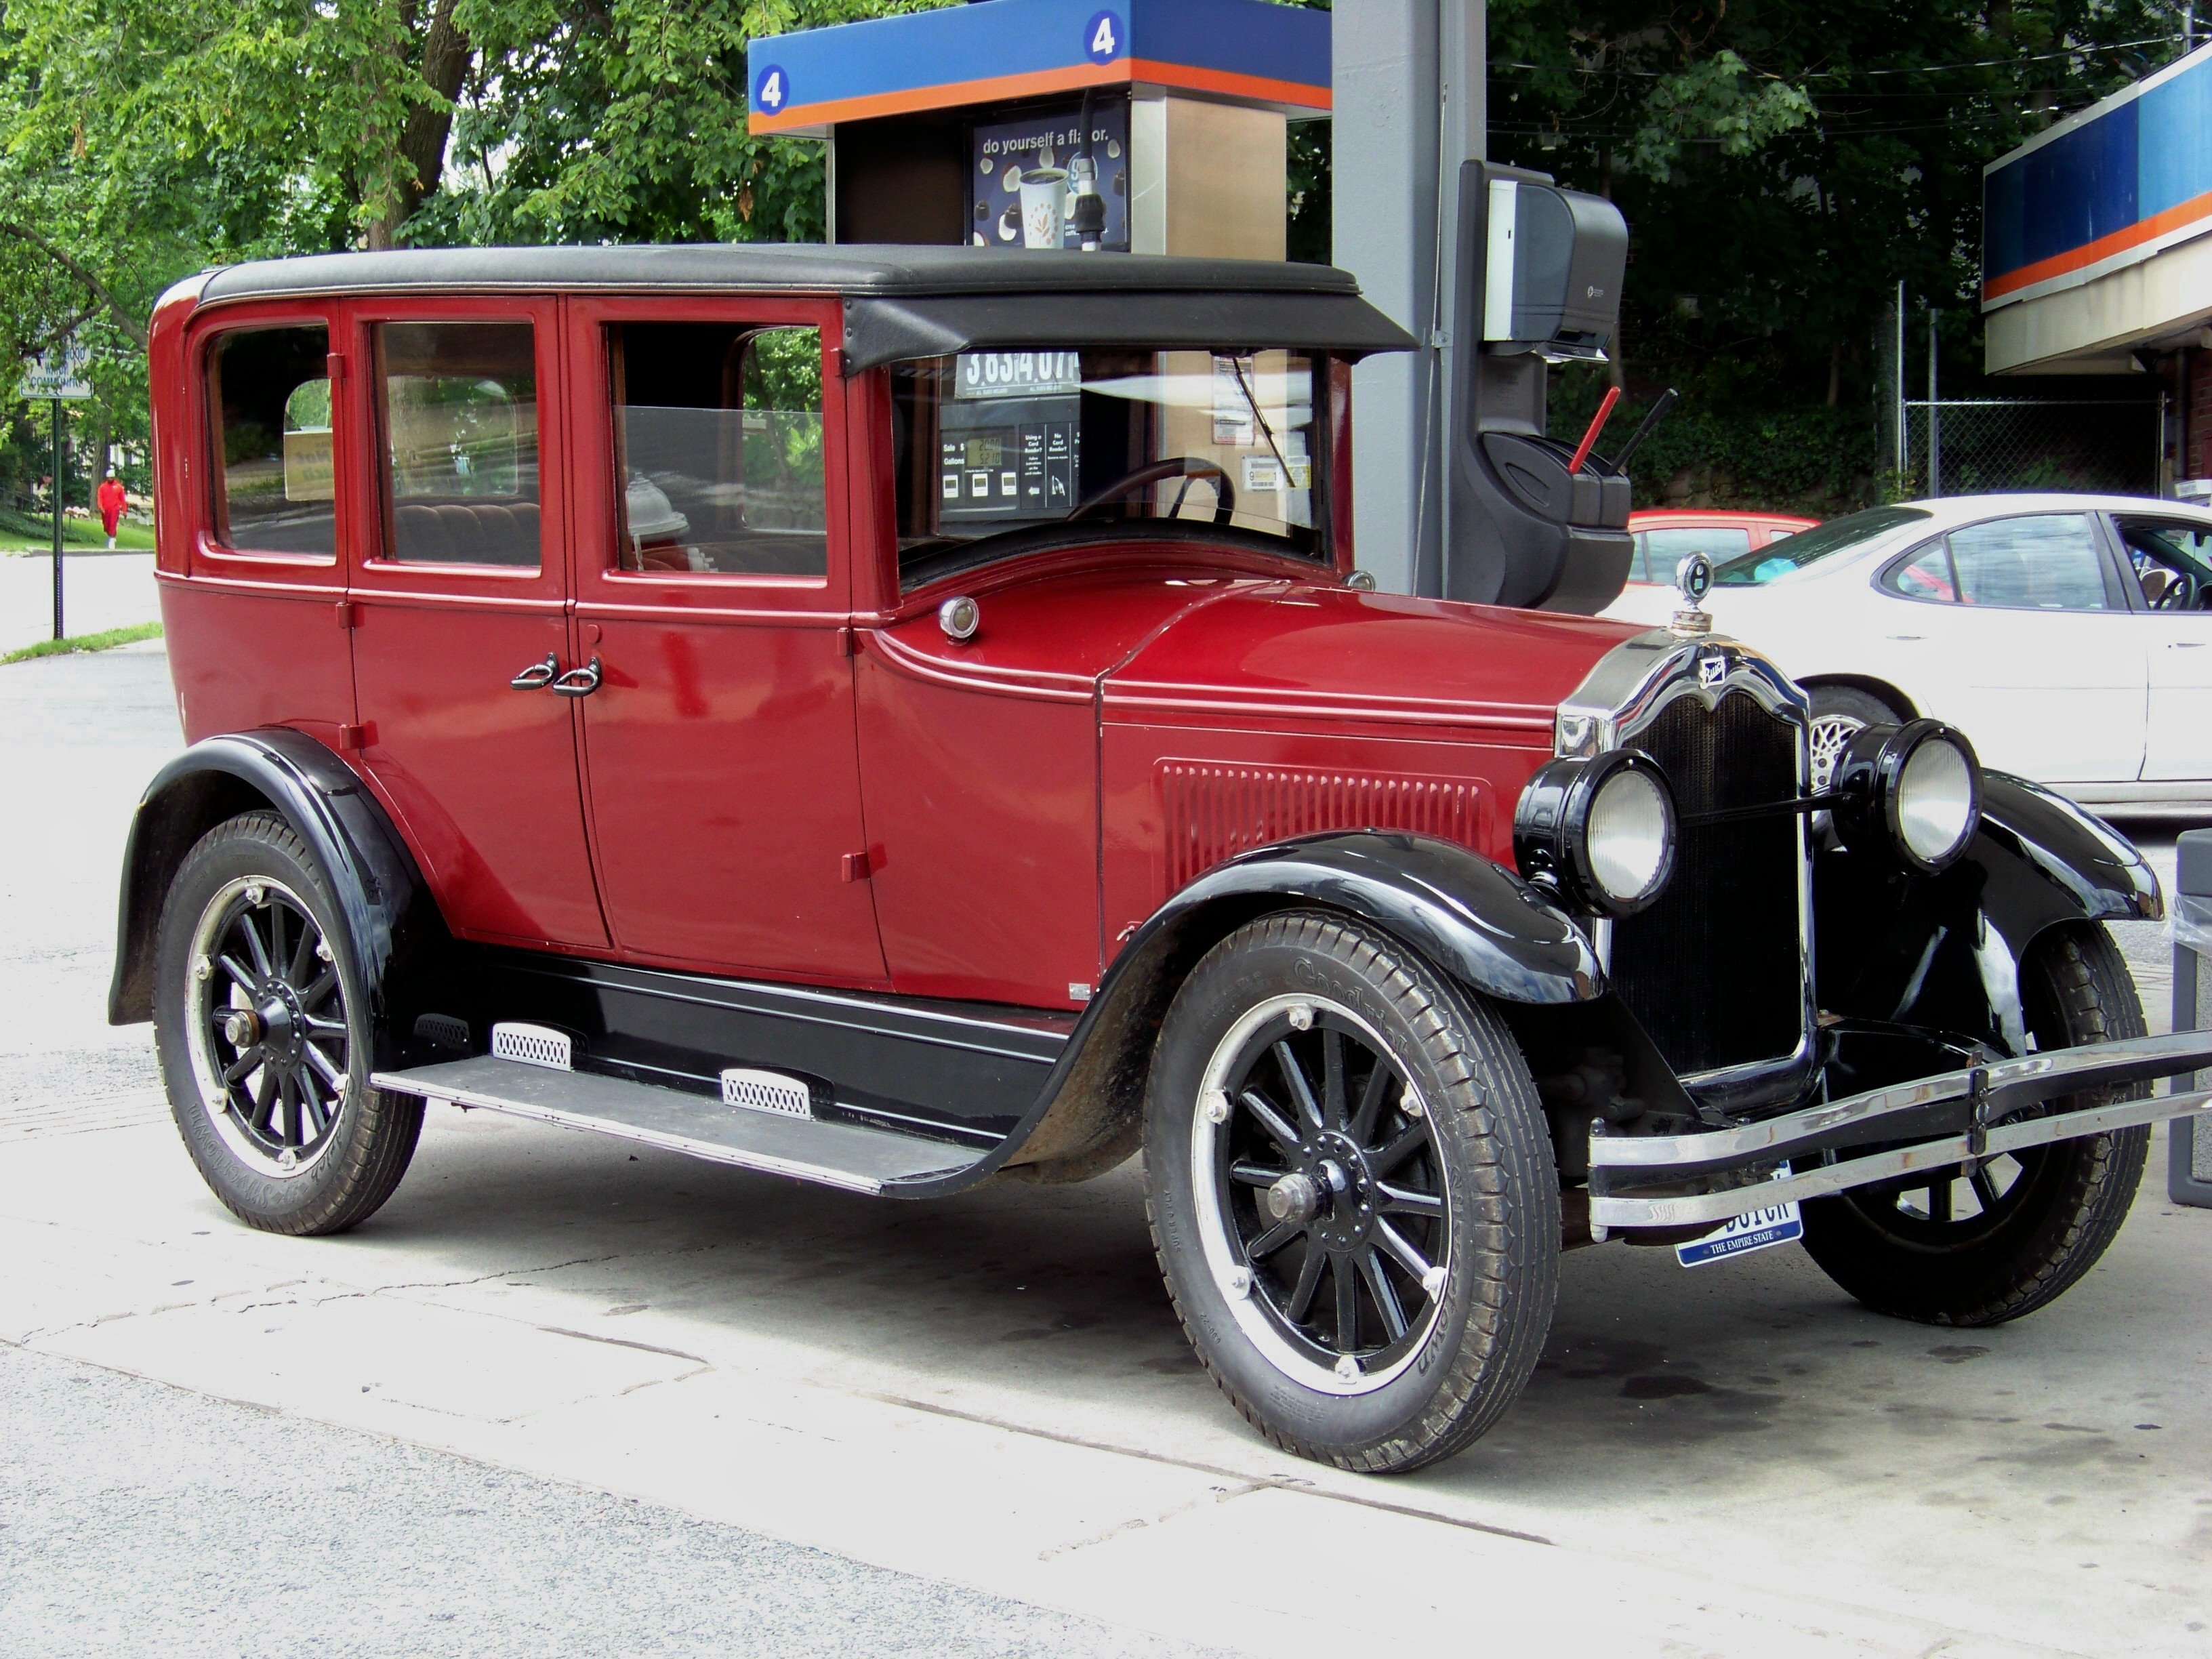 1000+ images about 1920s cars on Pinterest   Buick ...